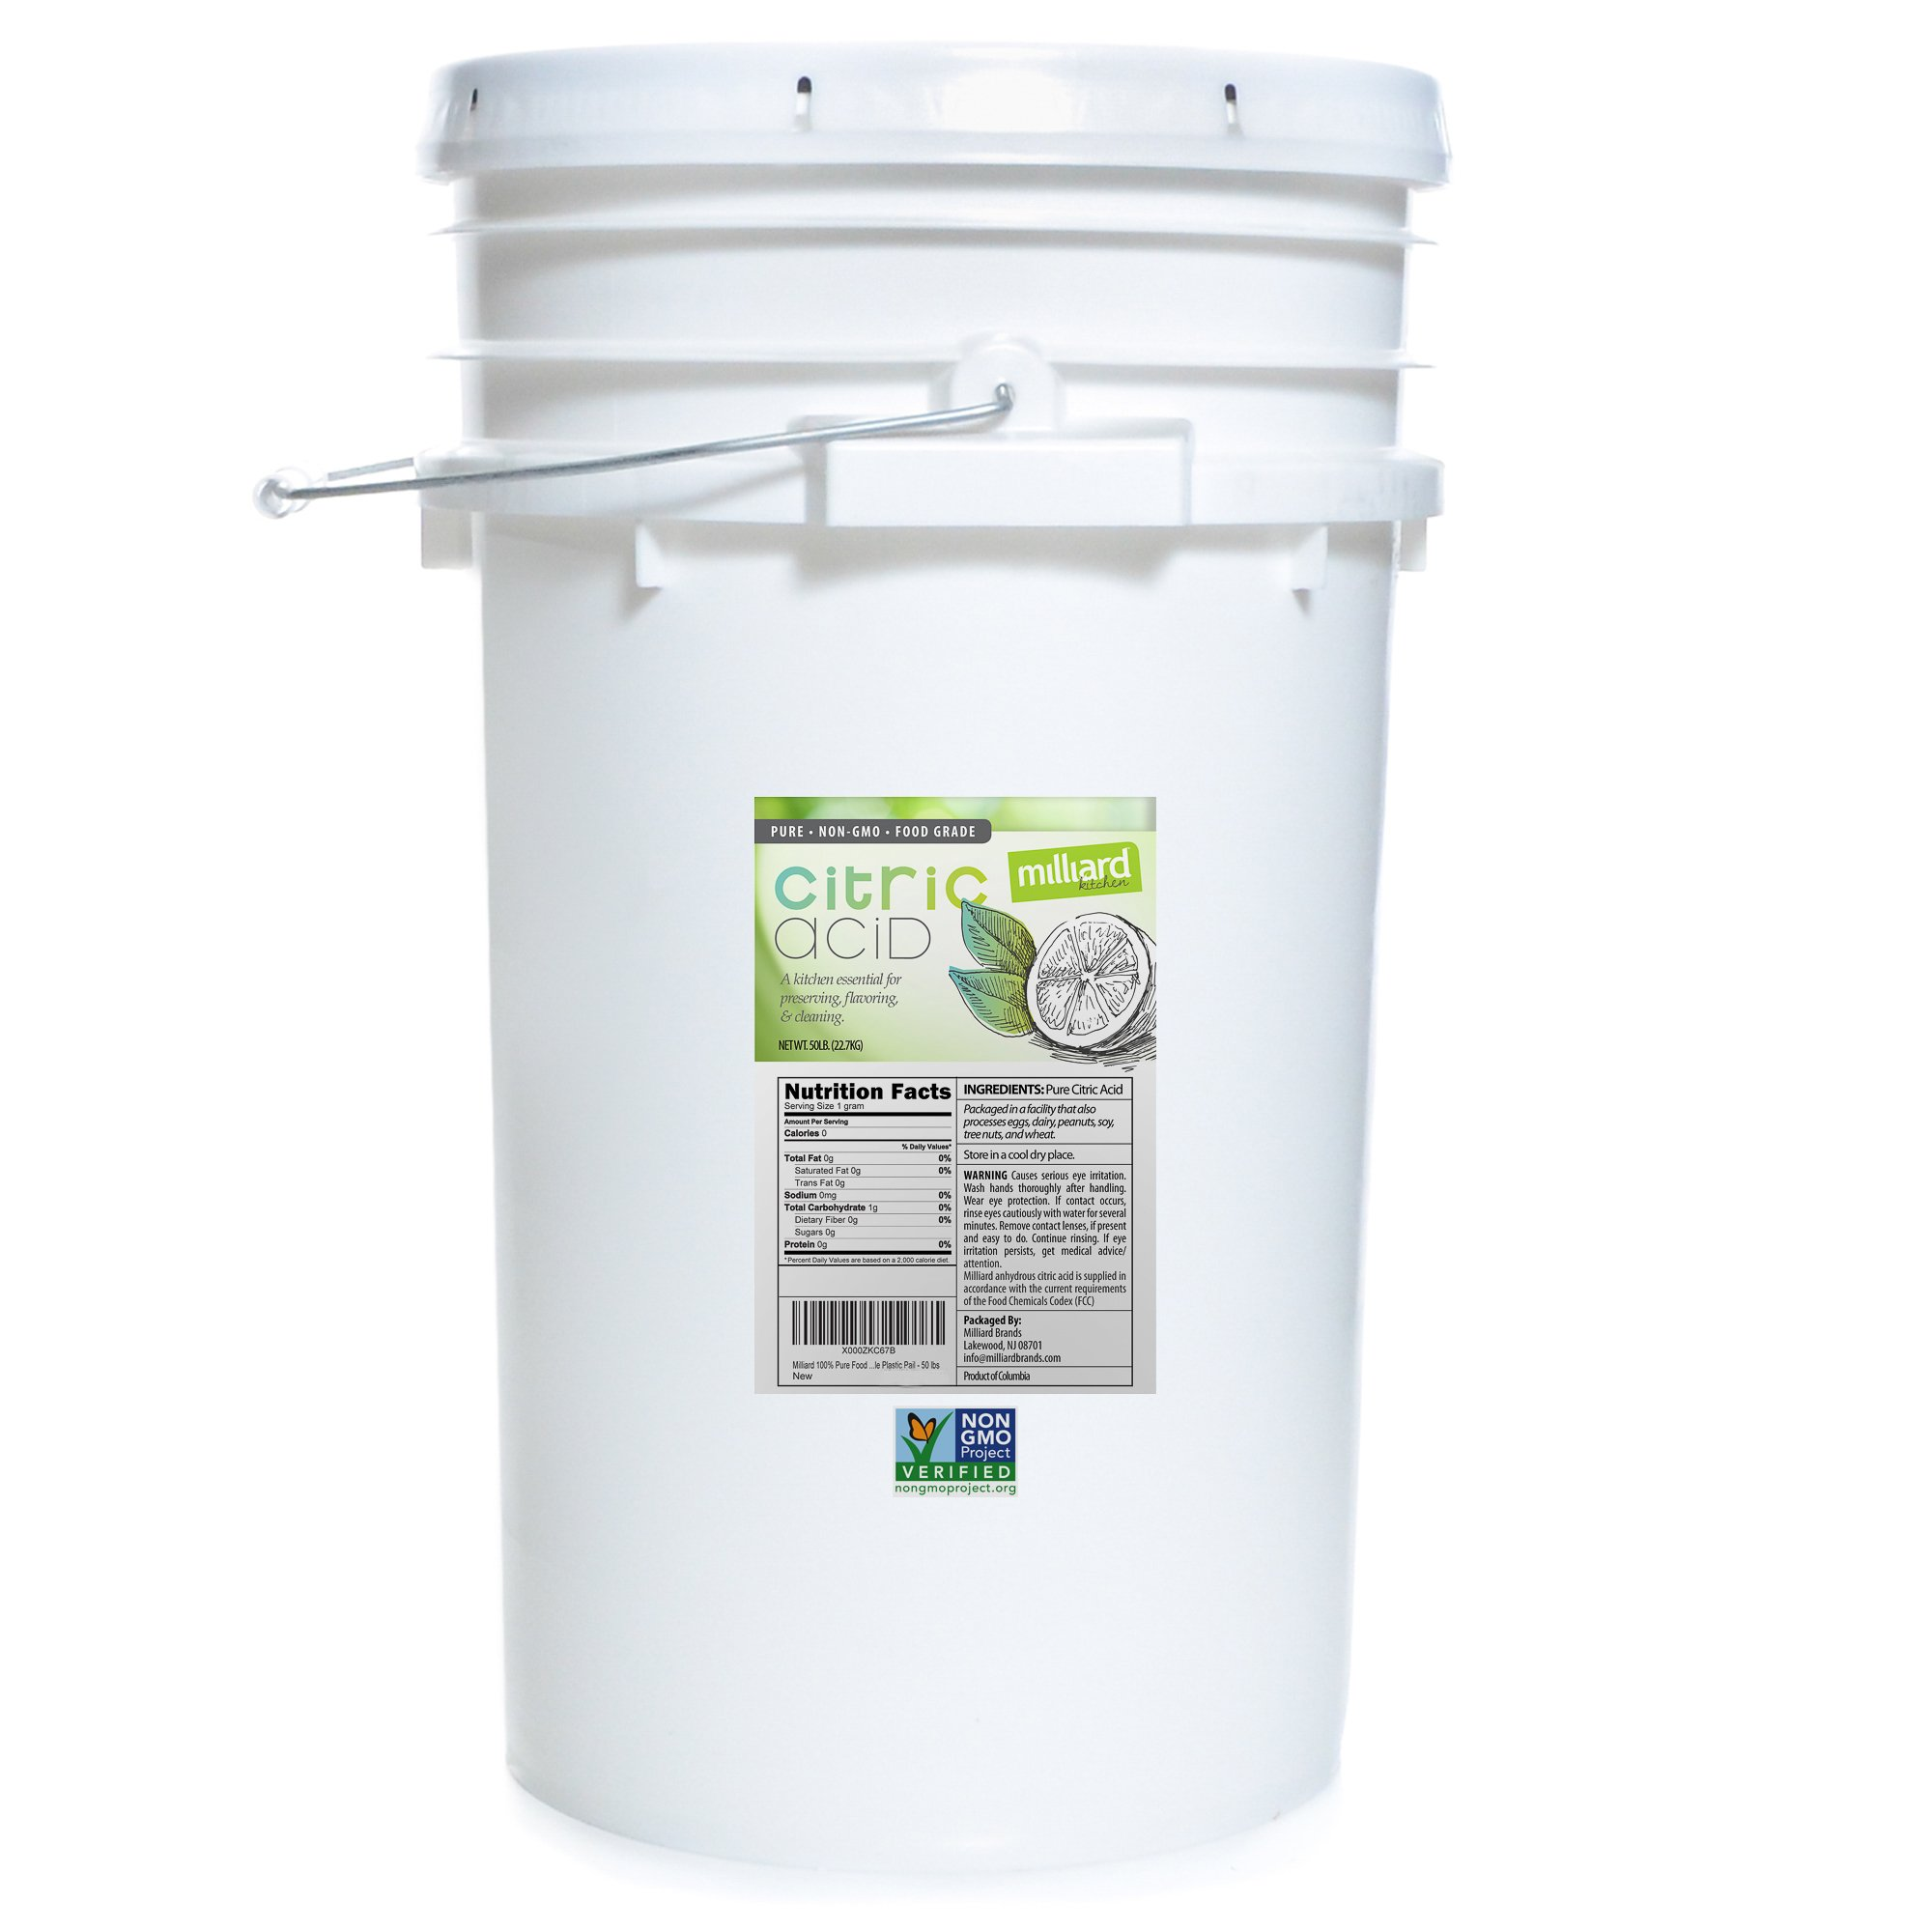 Milliard Citric Acid 50 Pound PAIL - 100% Pure Food Grade NON-GMO Project VERIFIED (50 Pound) by Milliard (Image #1)